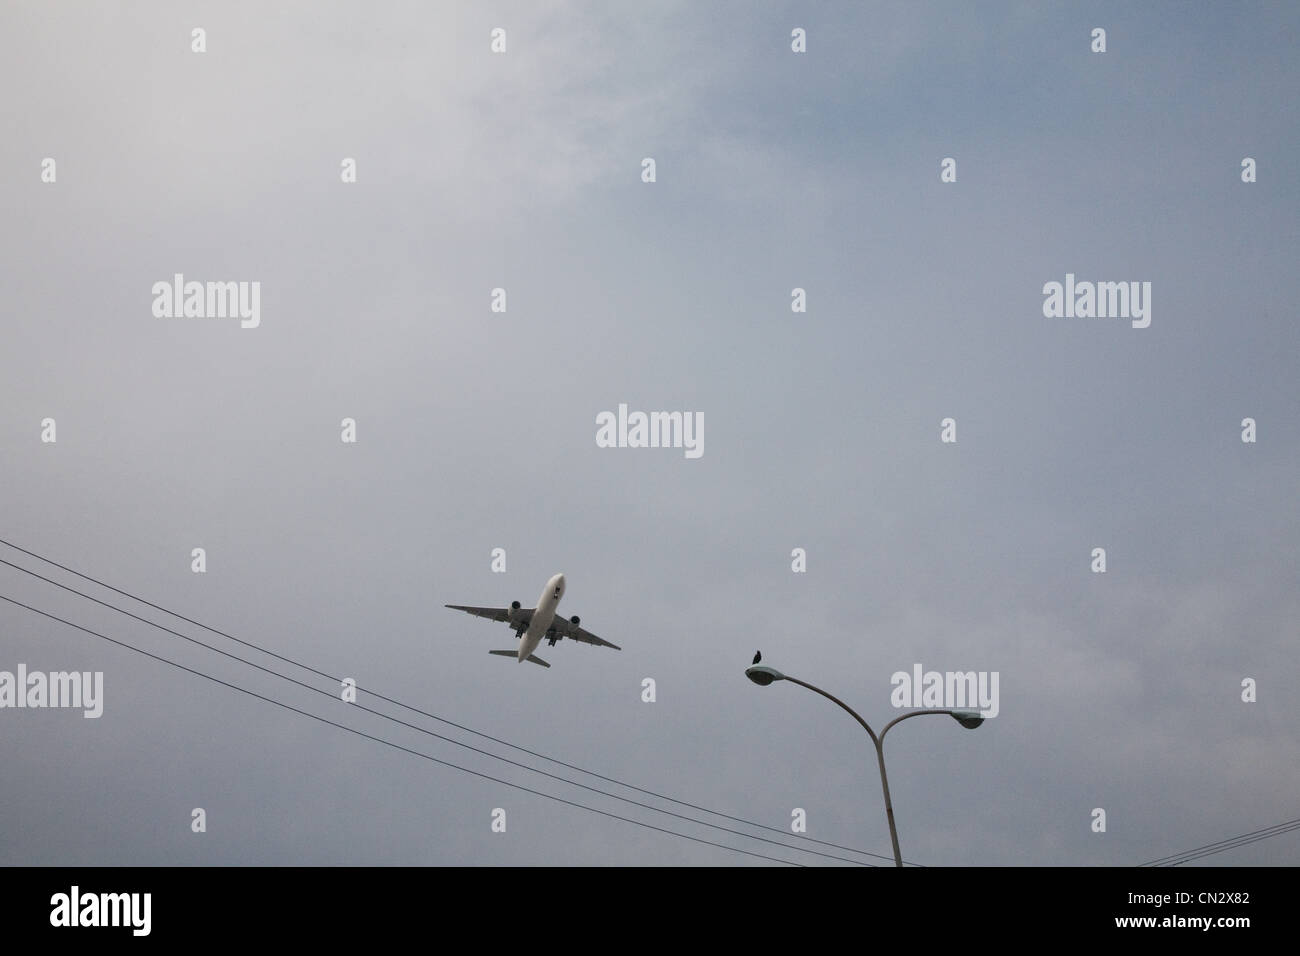 Airplane, low angle view - Stock Image